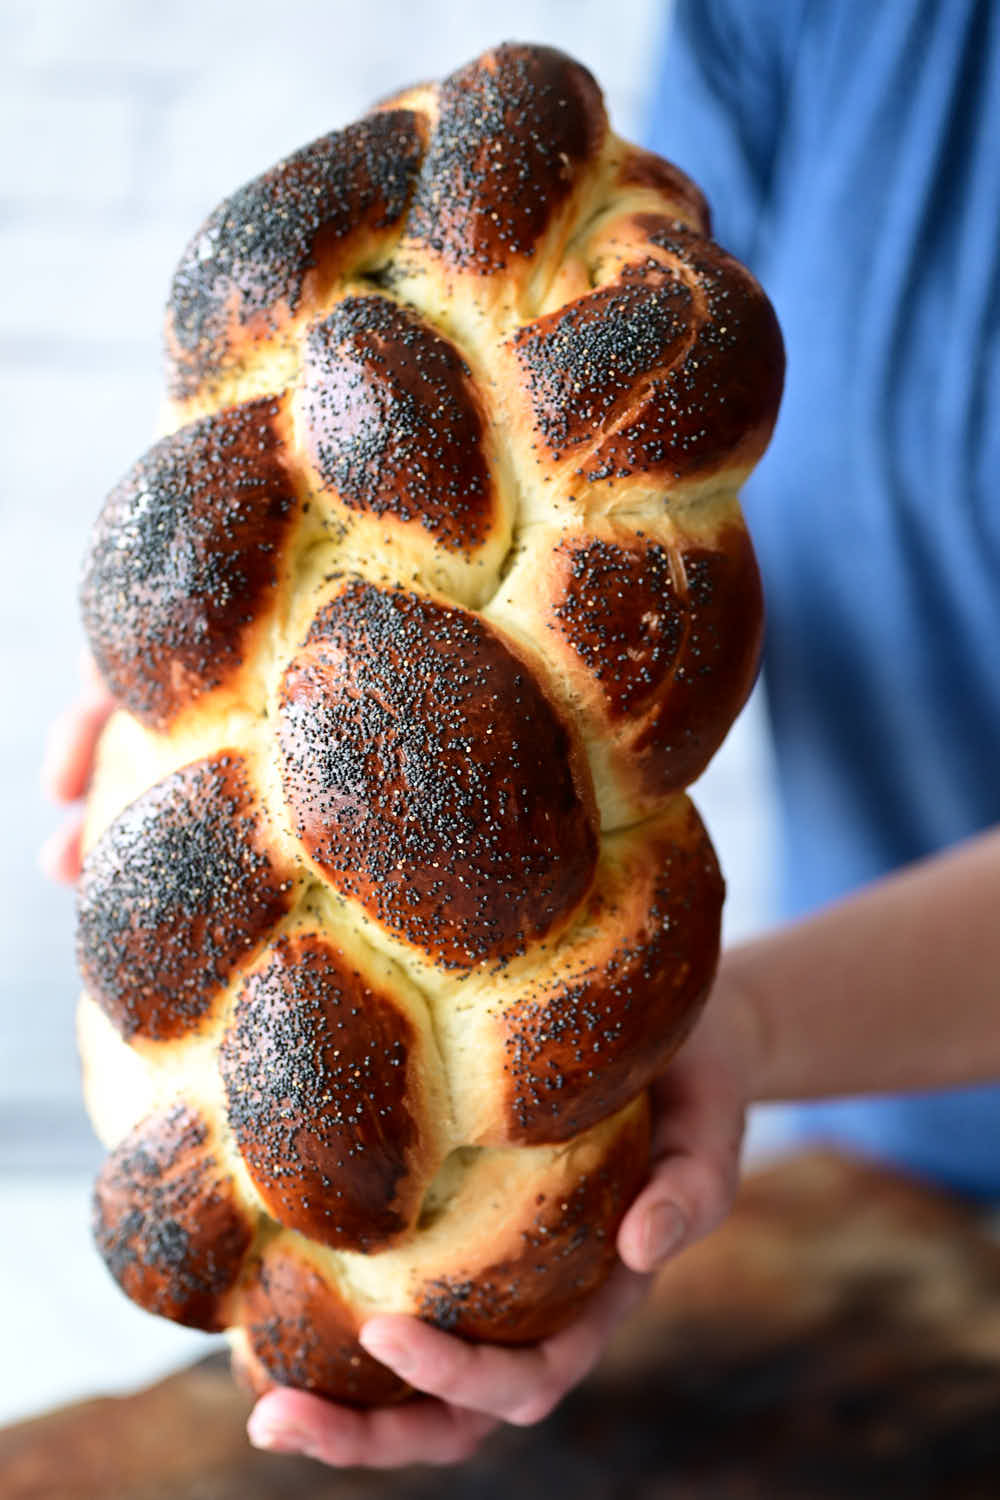 Large challah bread held by hands